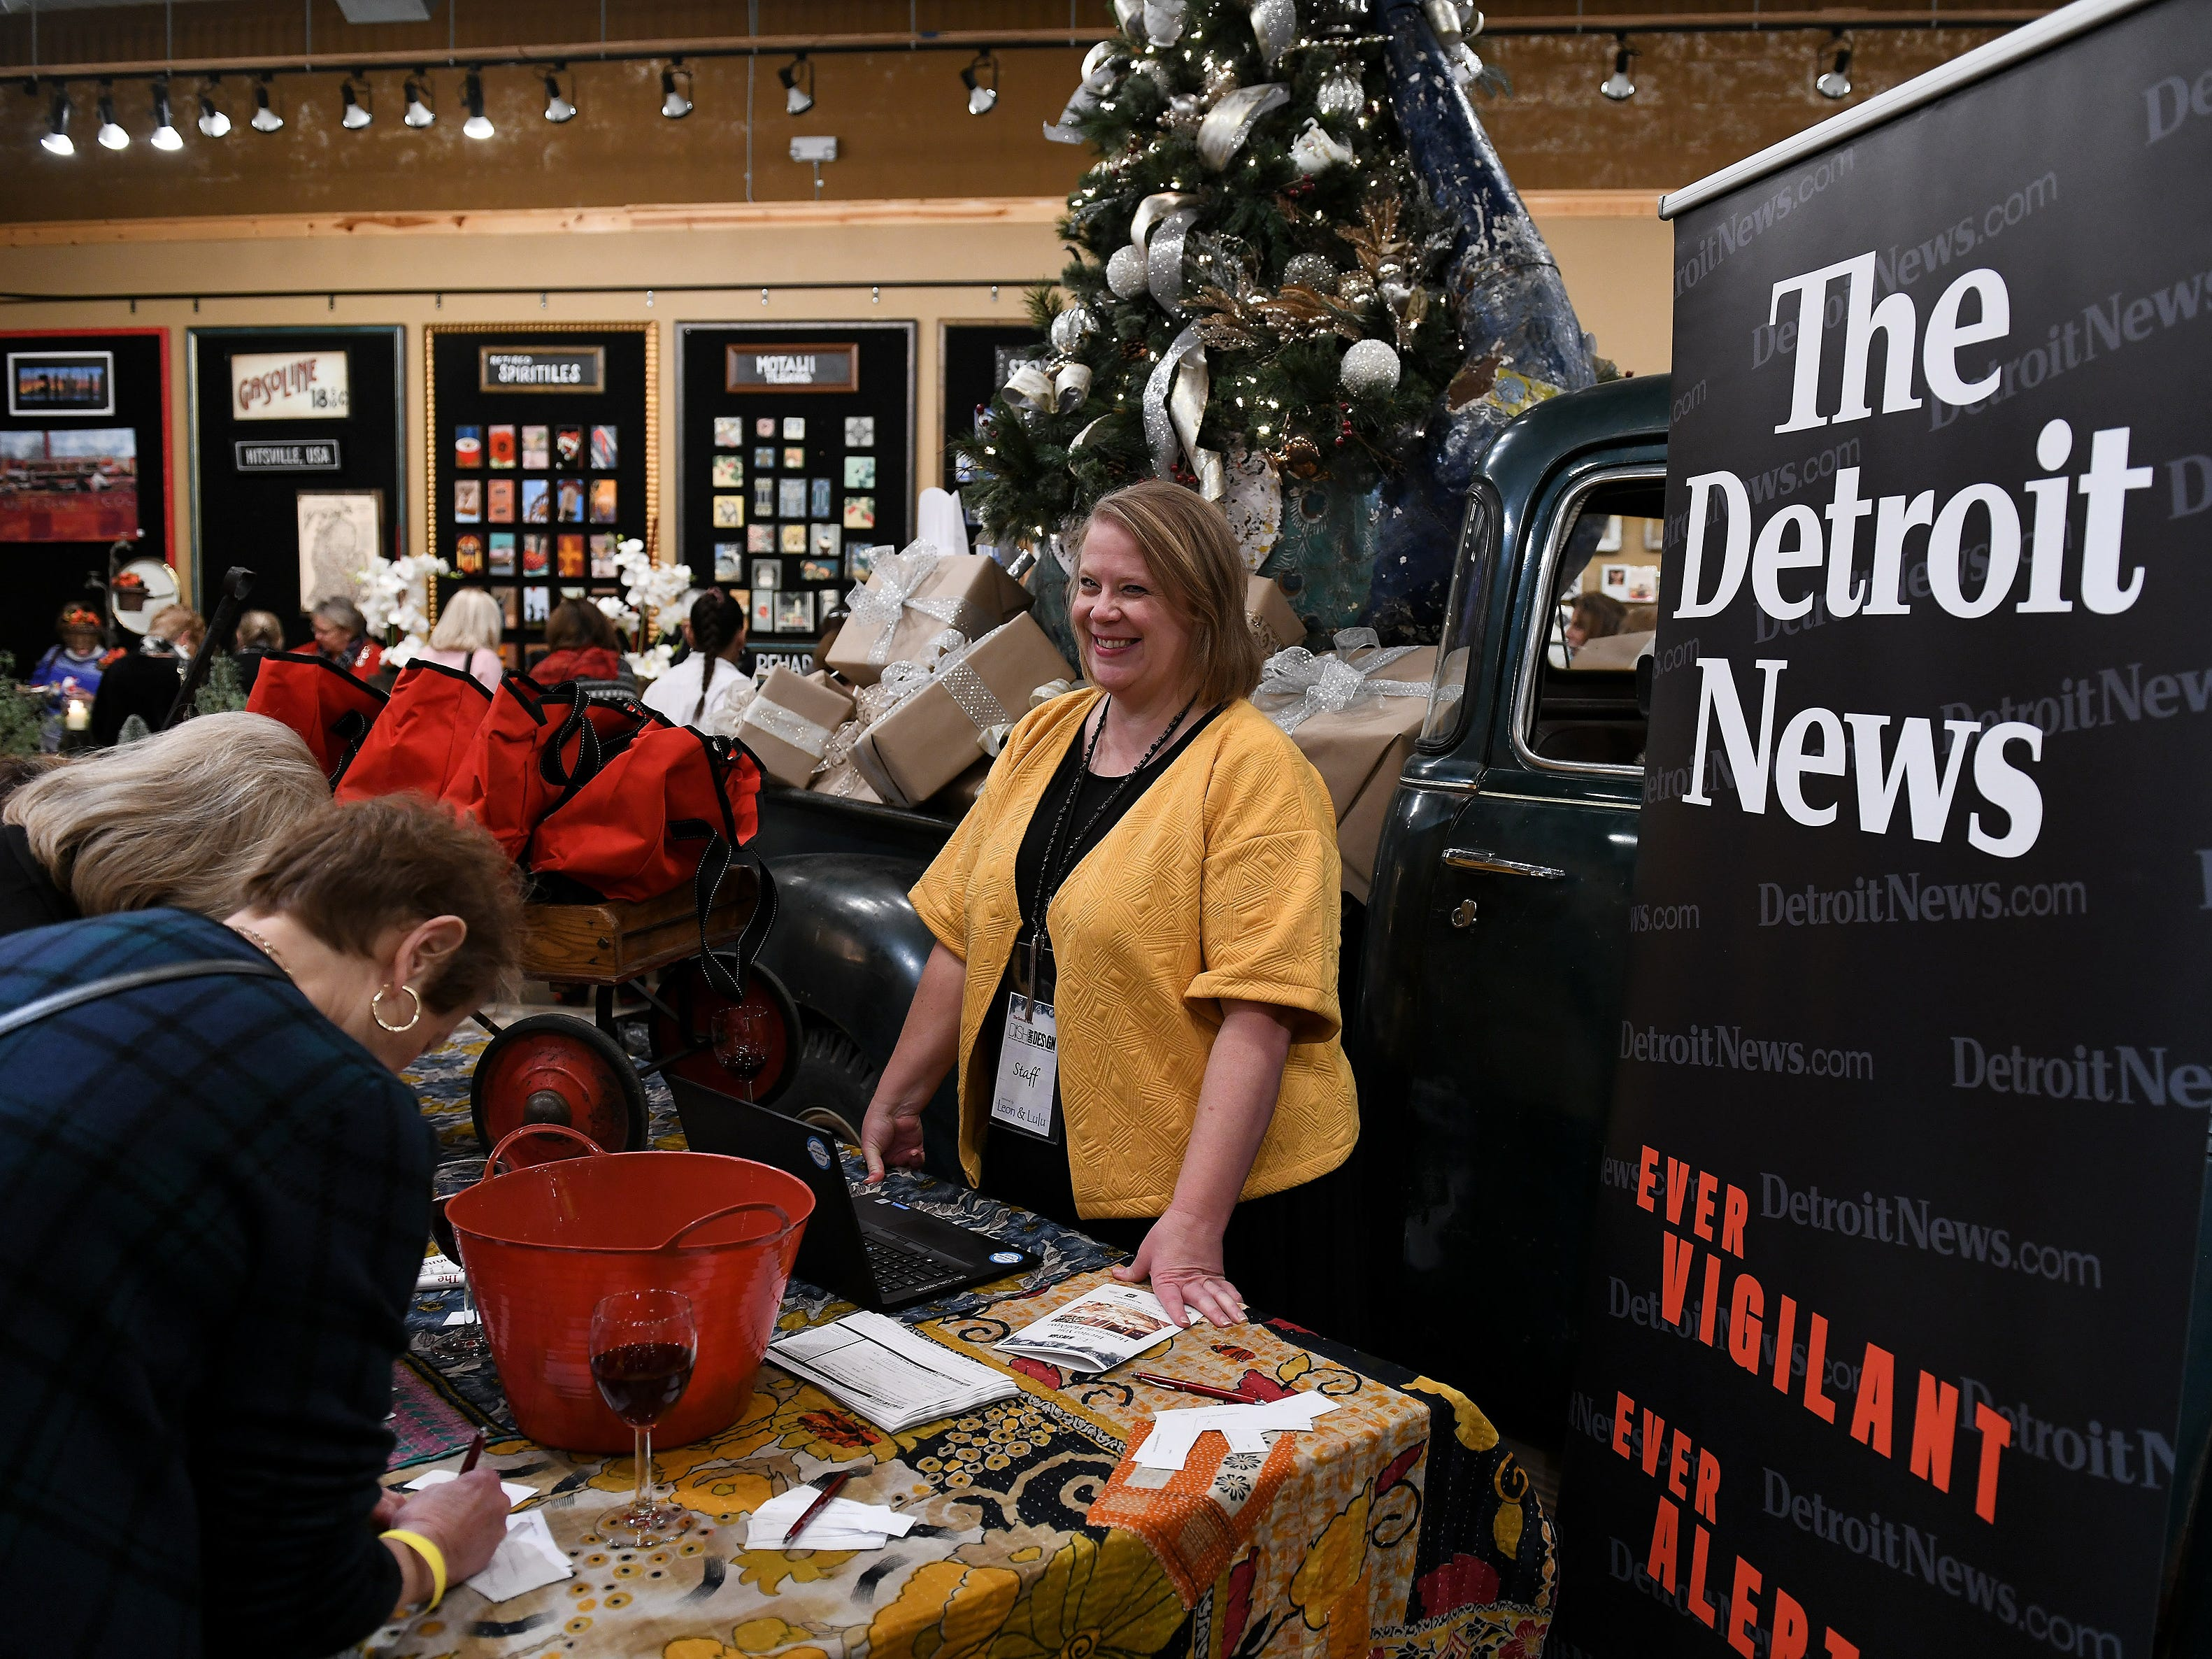 Julia Stevenson from The Detroit News consumer sales department takes down names for door prizes.